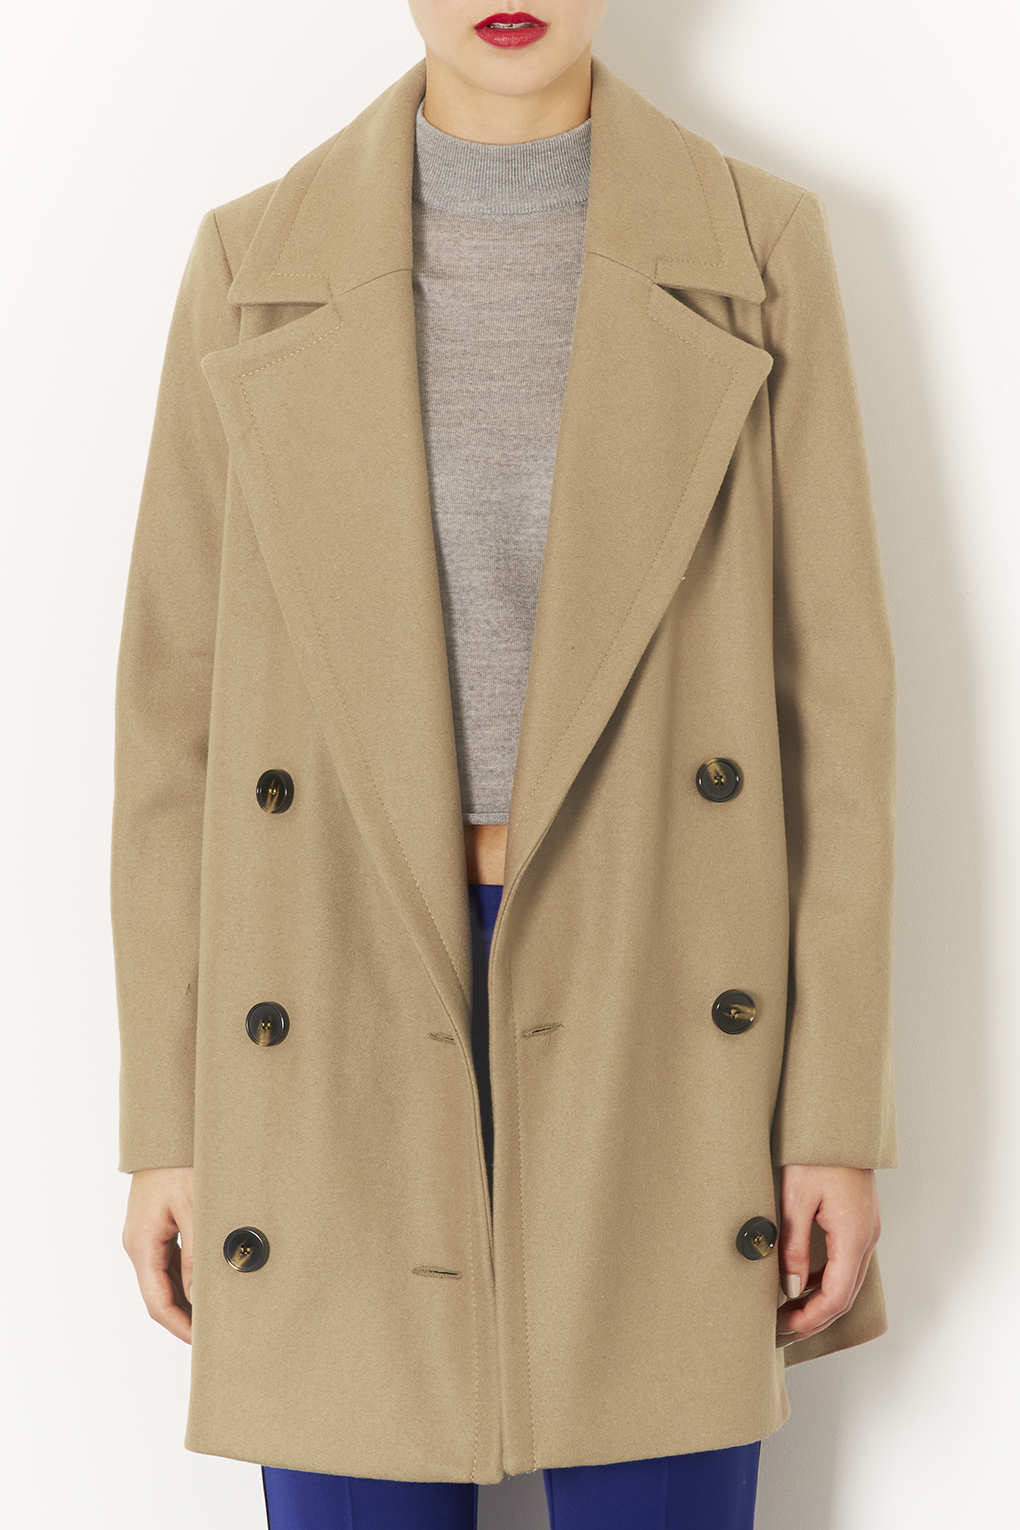 Topshop Womens Jewel Button Coat - Perfect Sale Online NHAljnSVb